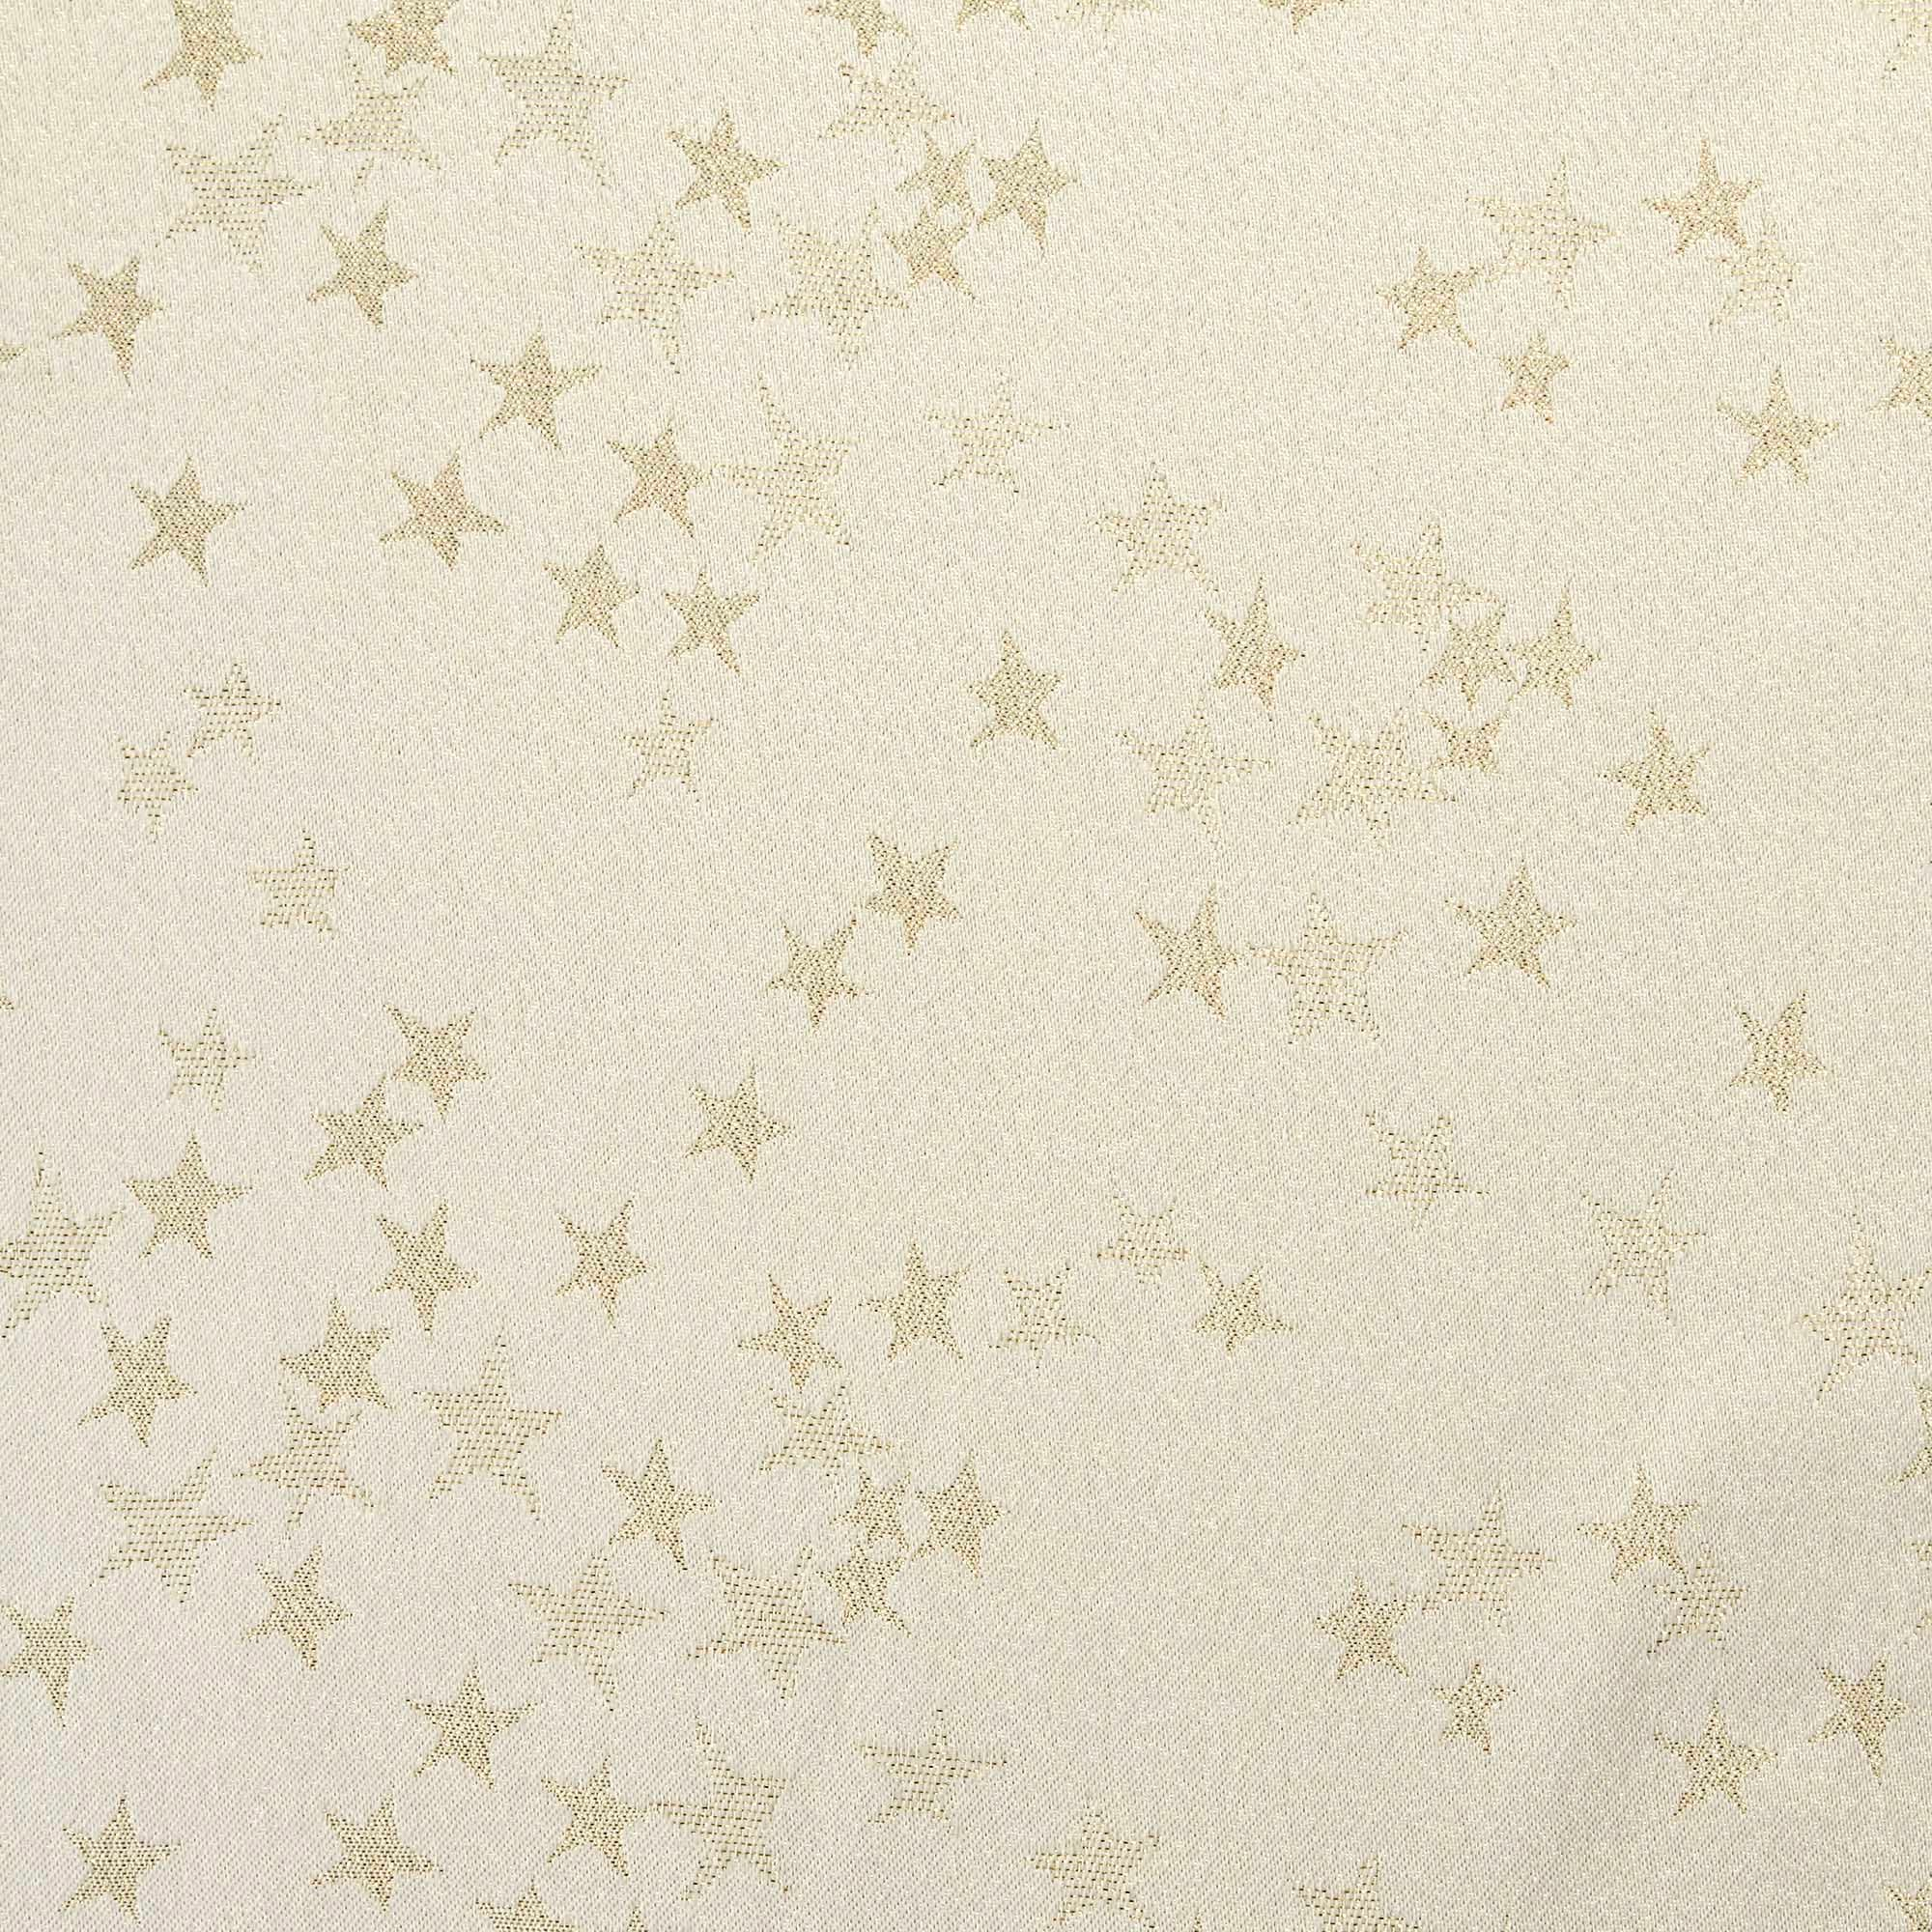 Gold Star Tablecloth